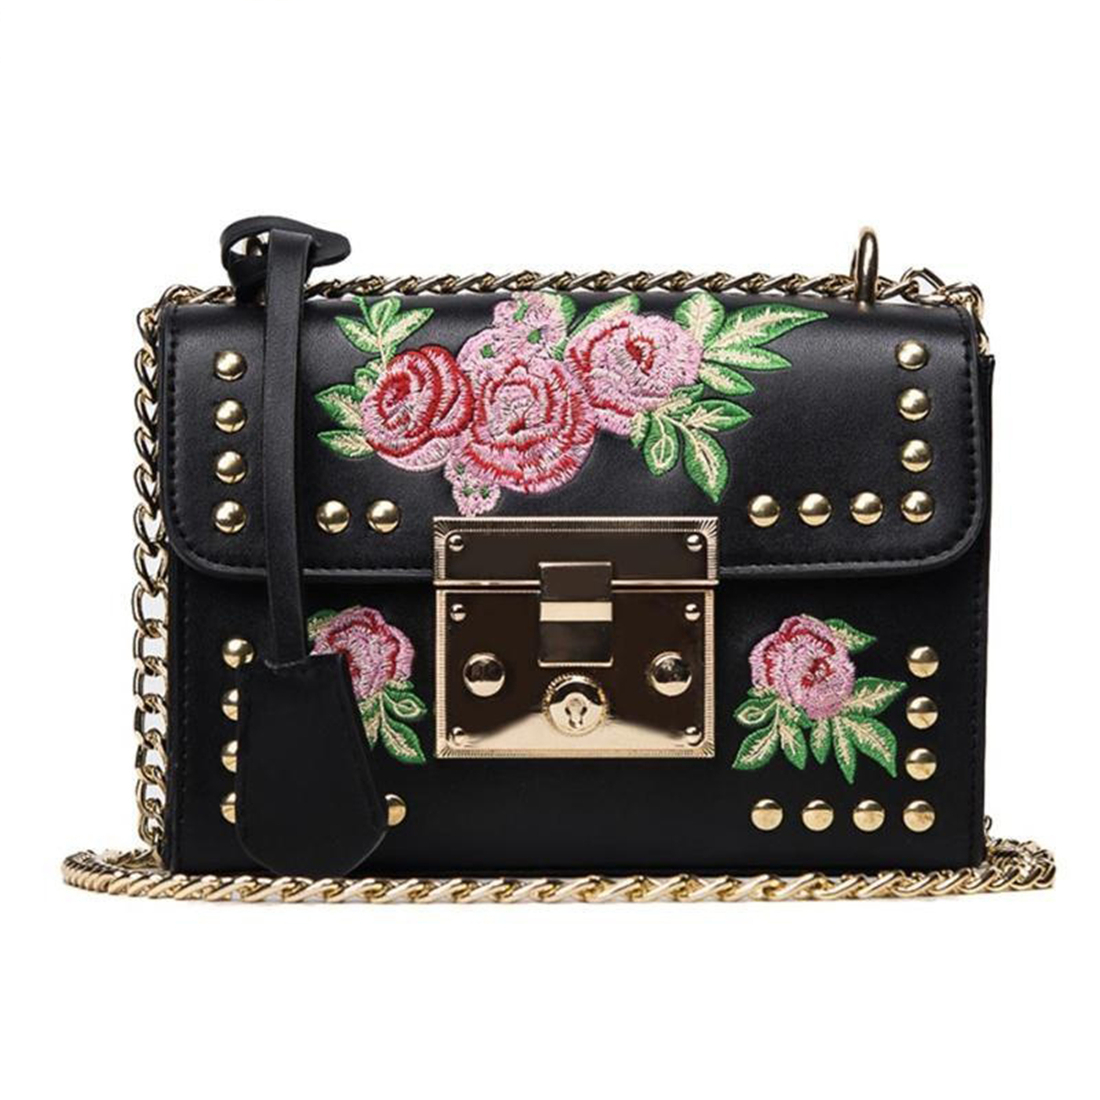 BEAU-Black new PU leather handbag Messenger bag embroidery rivets lock embroidery chain bag tide national wind small square ba